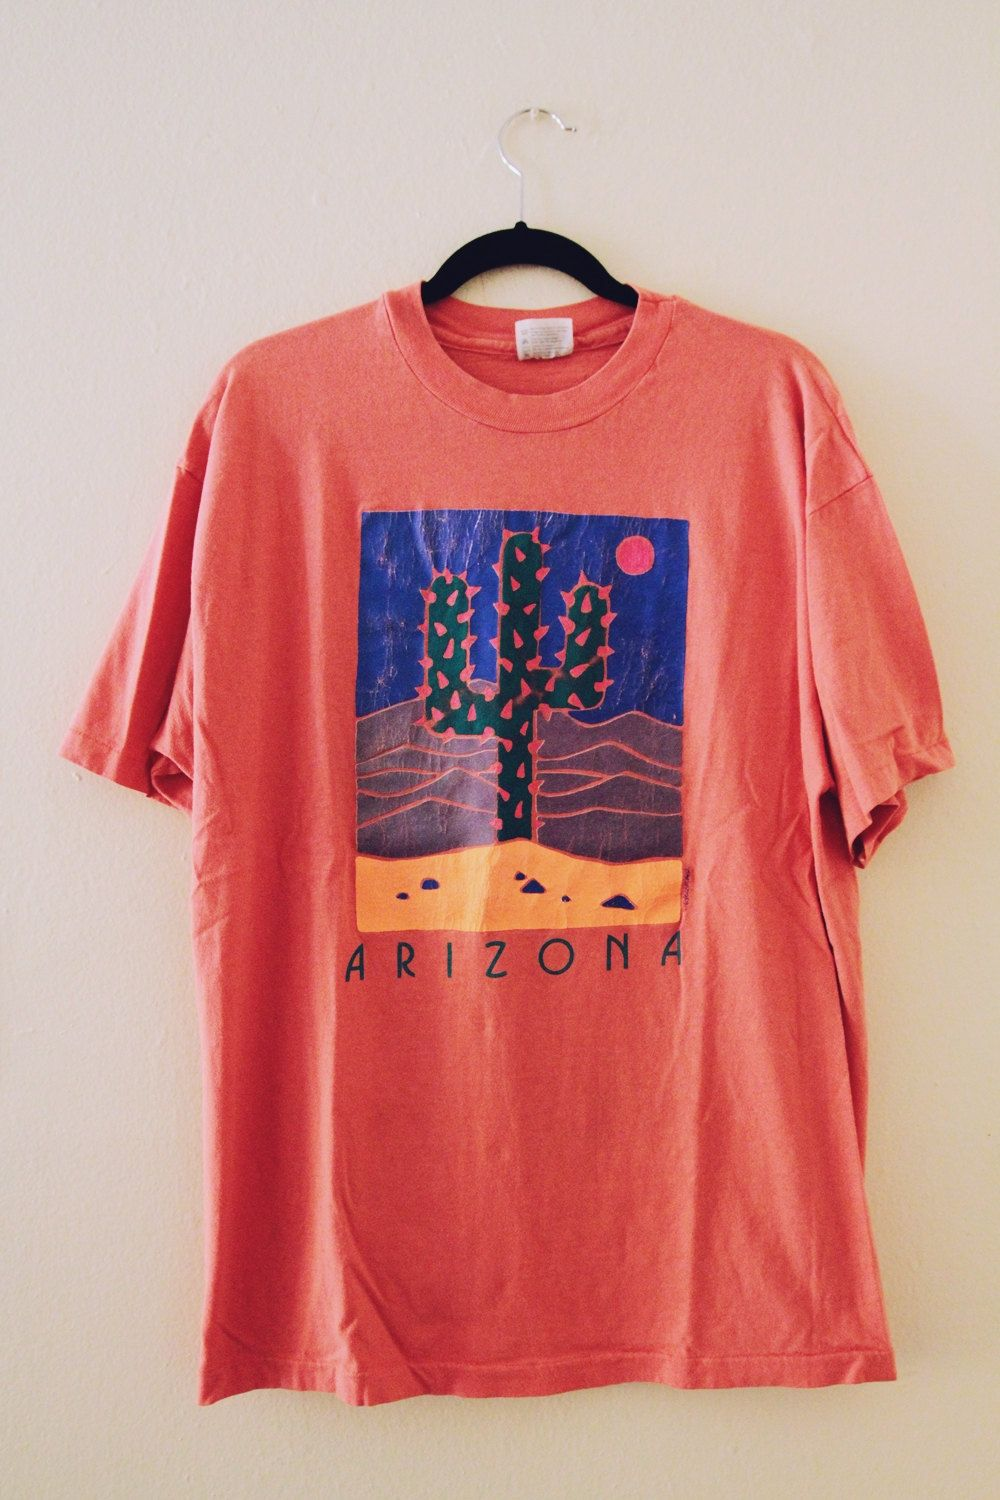 96e0245888 90 s t-shirt Arizona ha un neon